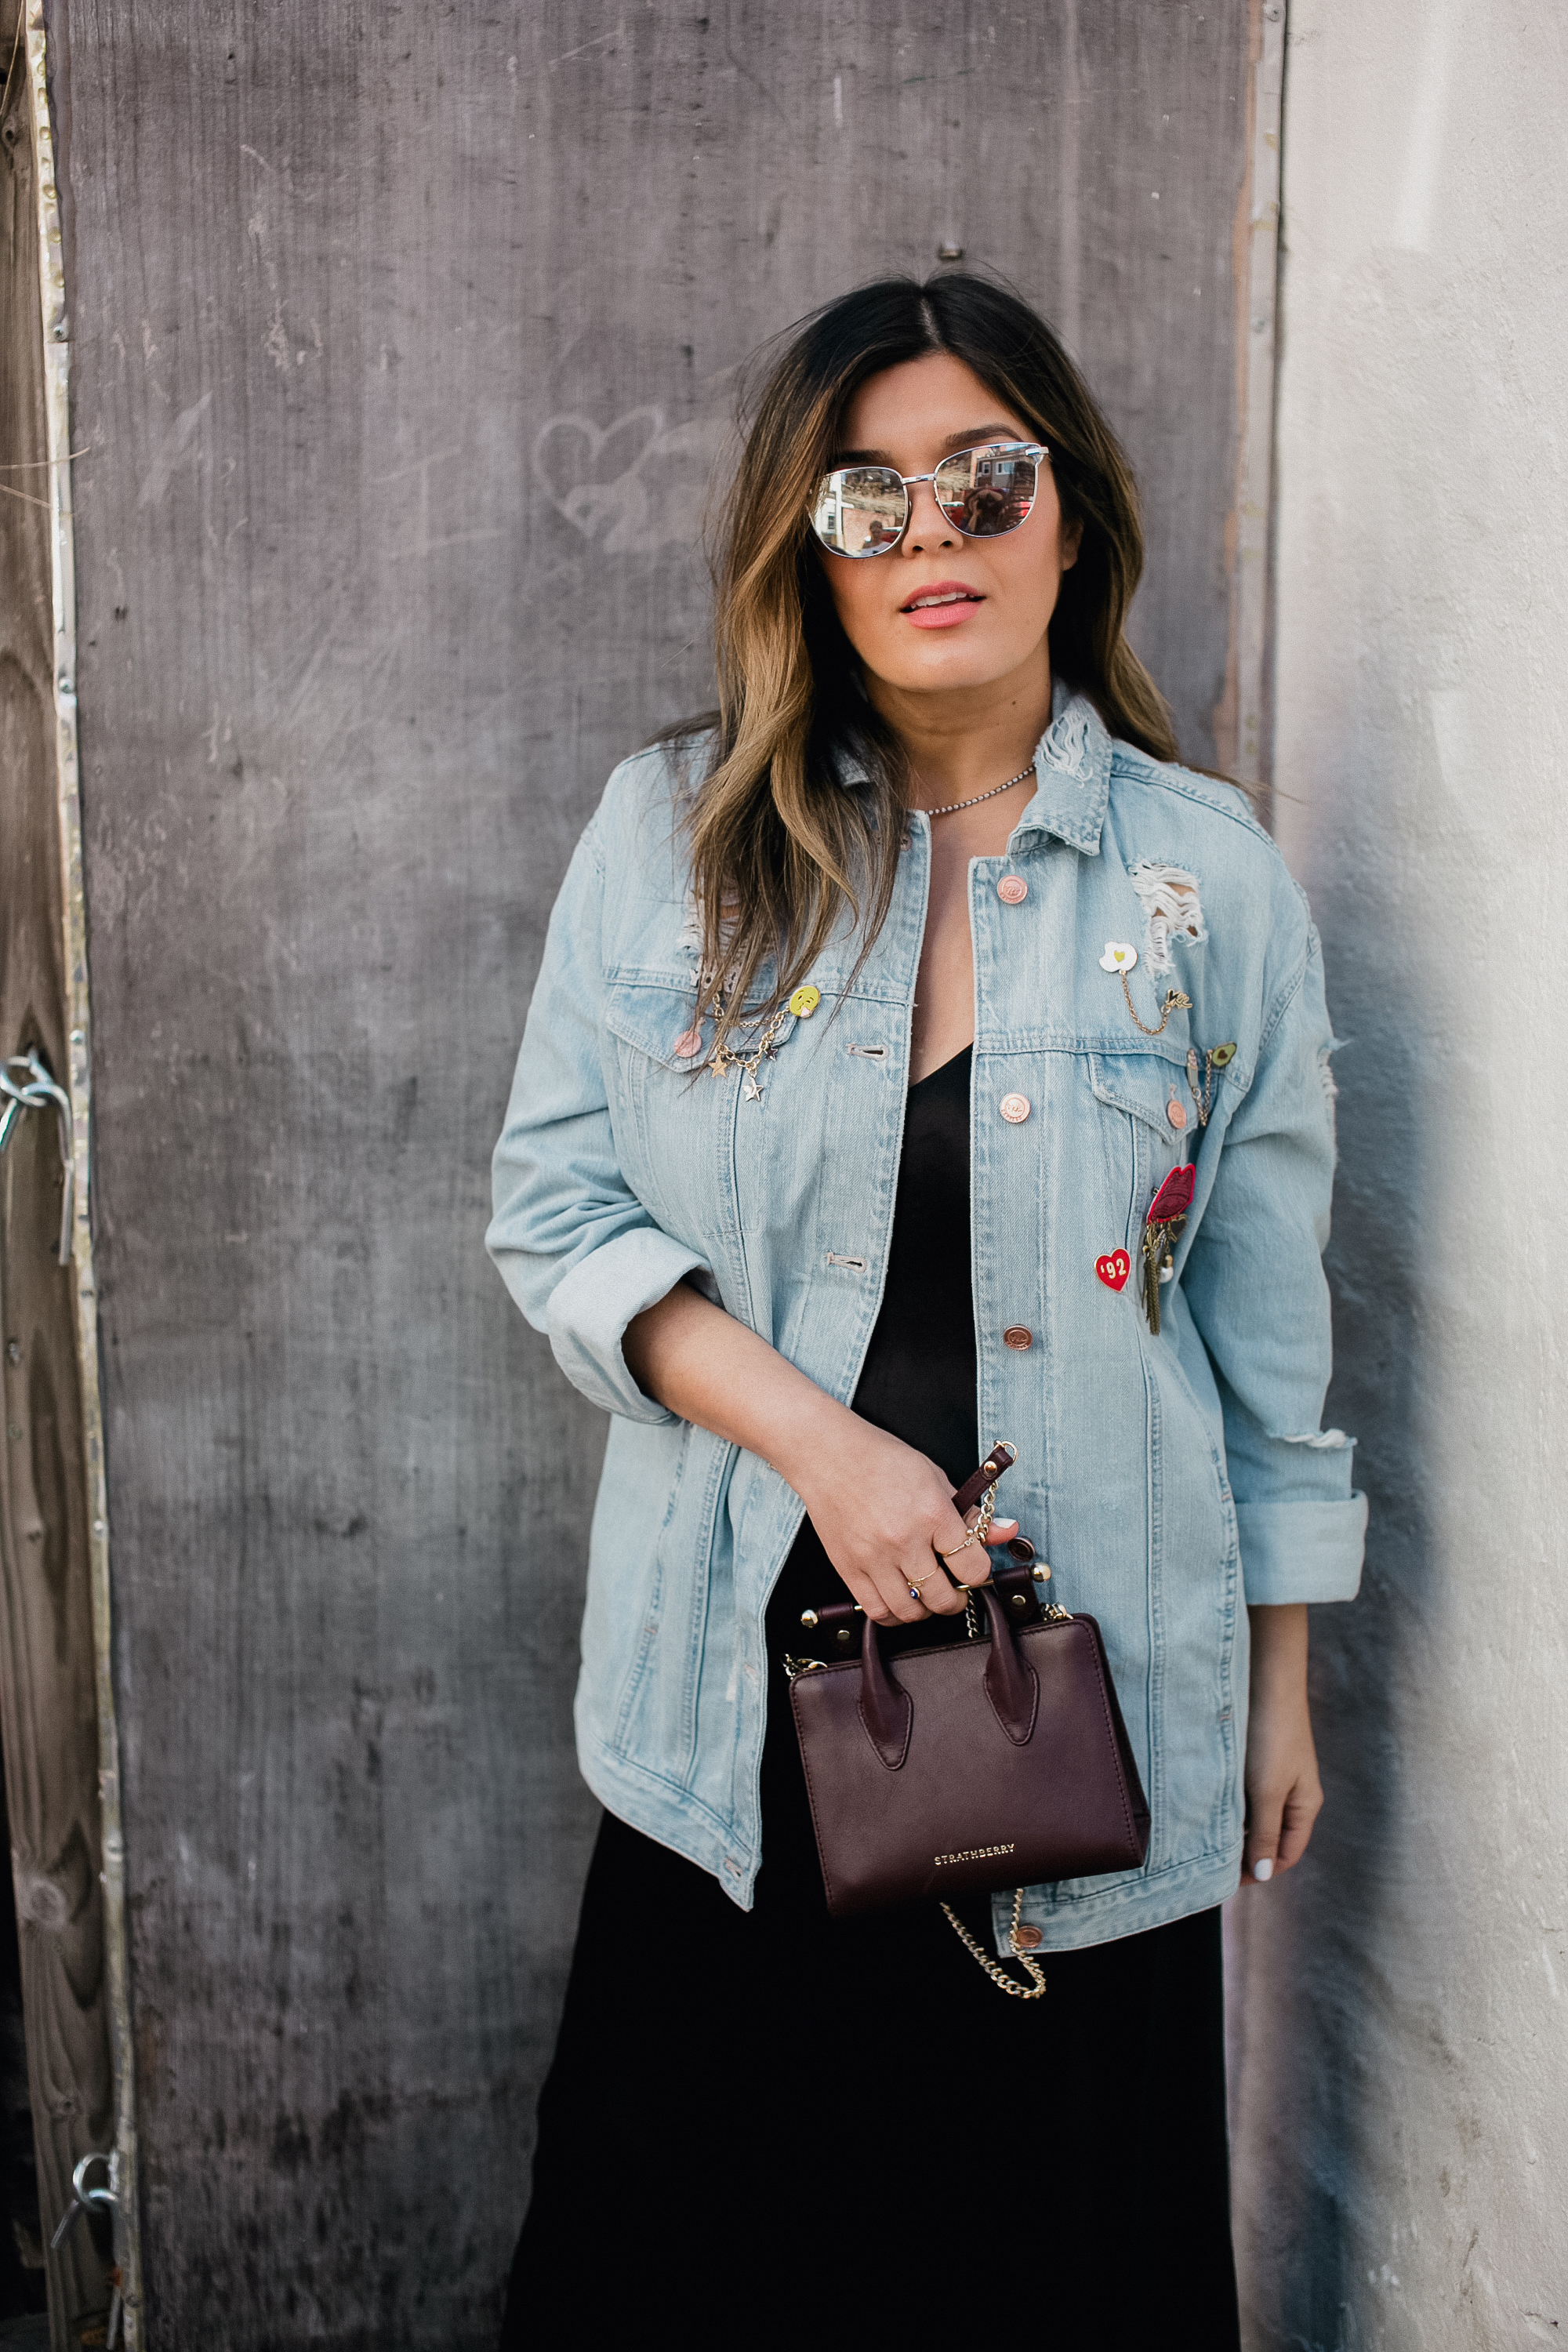 Style MBA Wears Karlie Kloss collection denim jacket